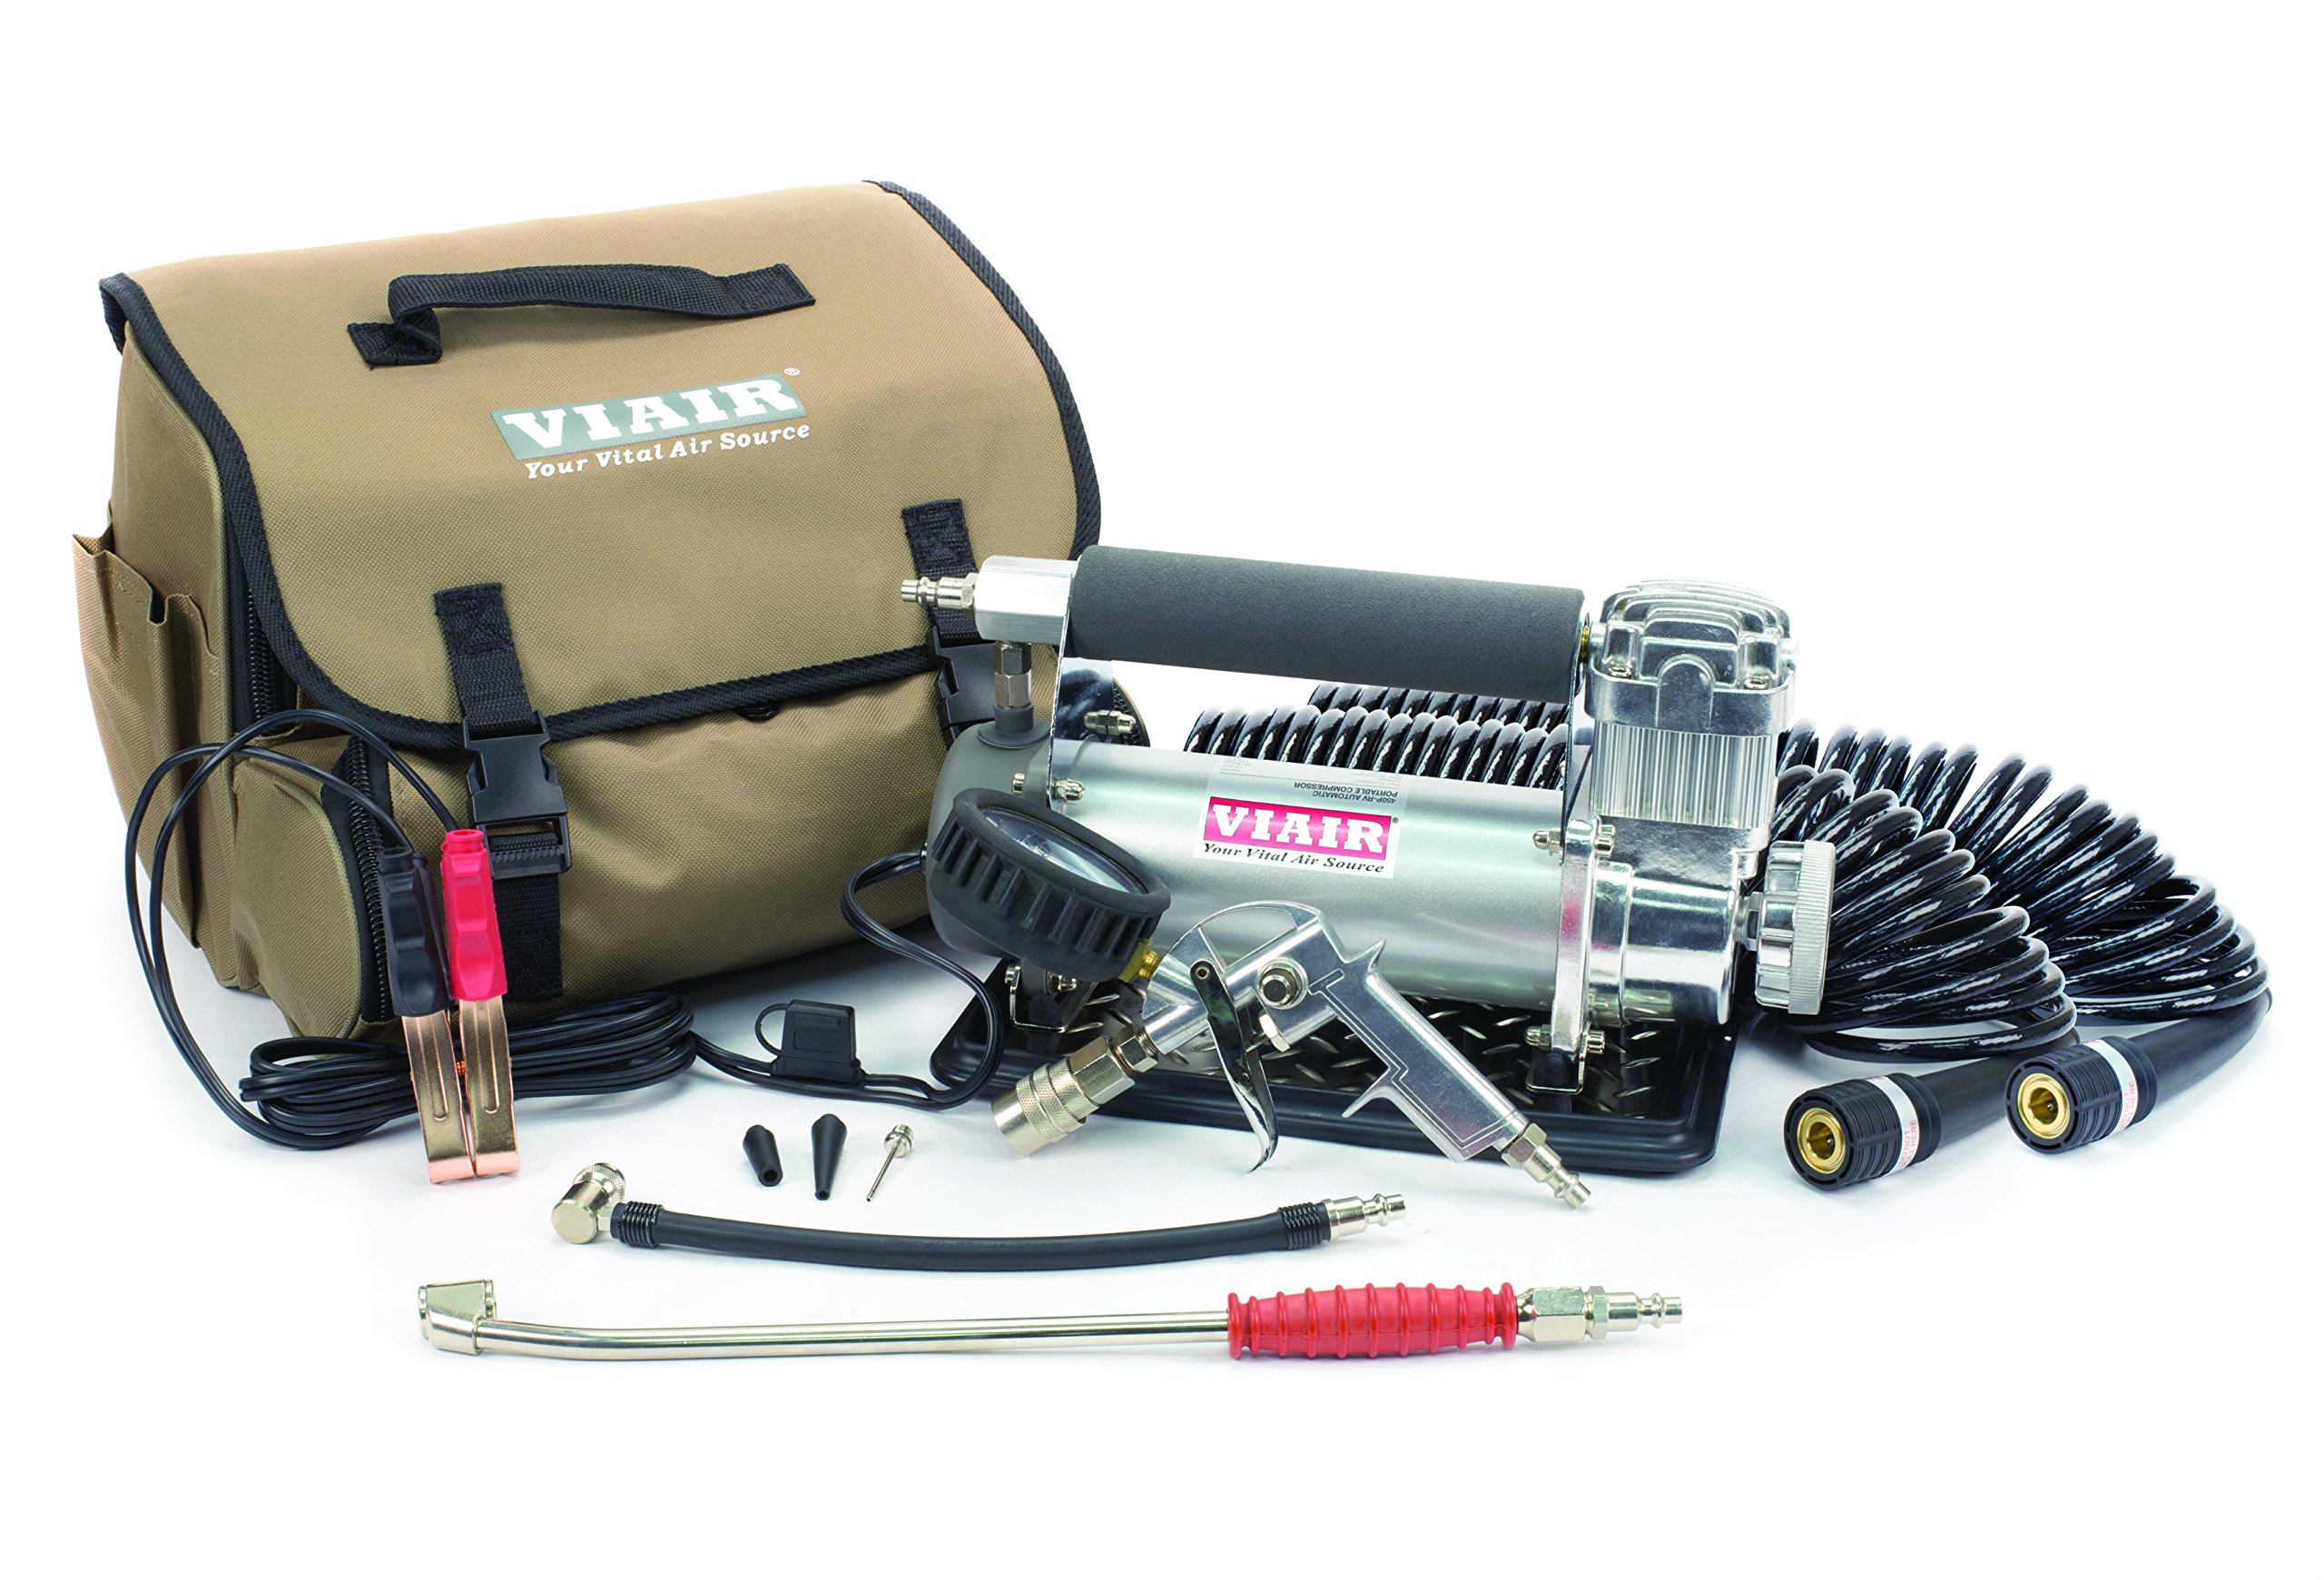 VIAIR 45053 Silver Automatic Portable Compressor Kit (450P-RV) product image